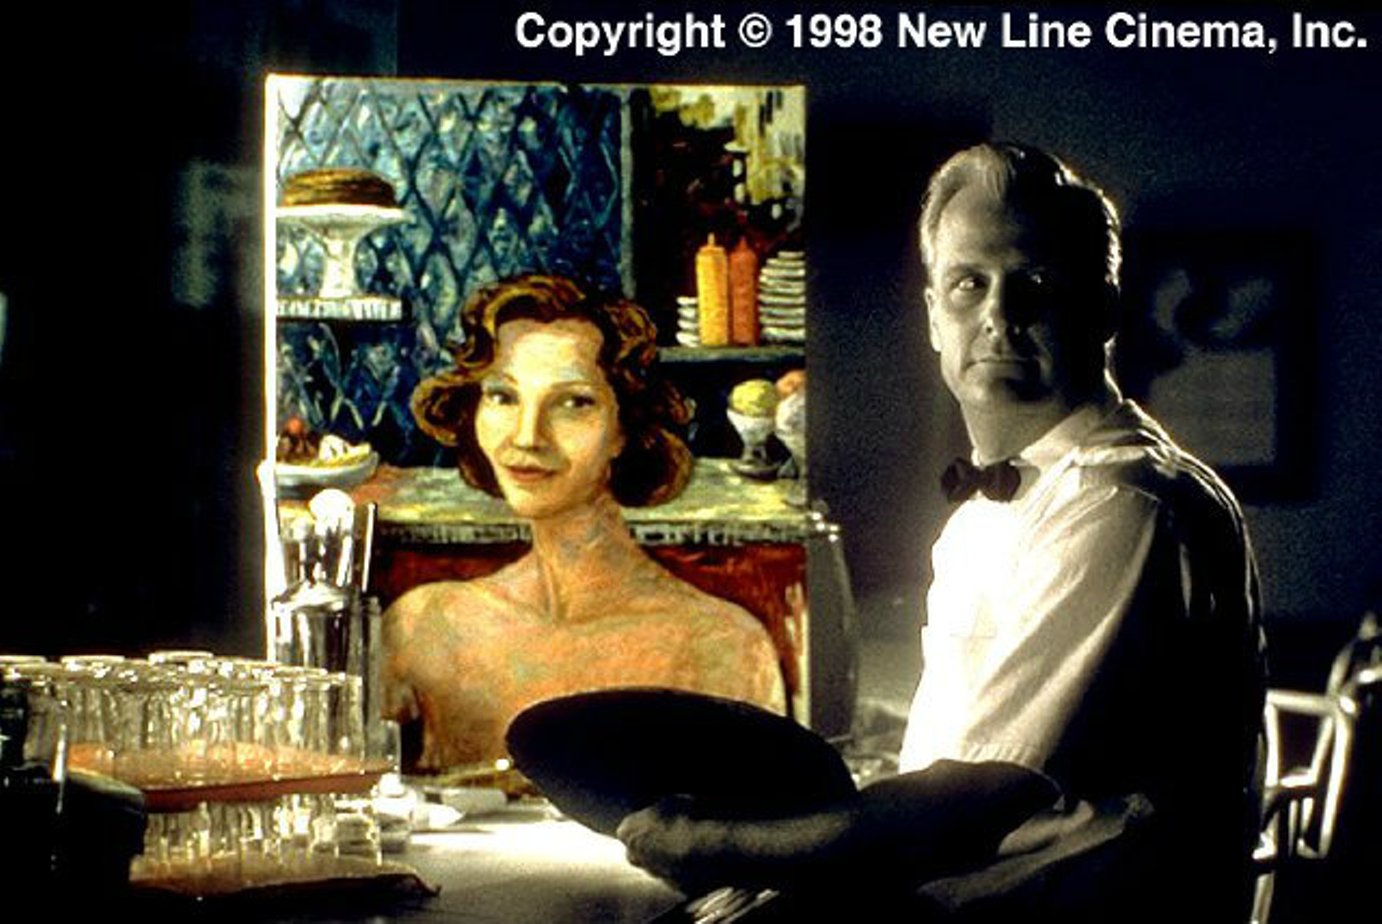 pleasantville film analysis The film 'pleasantville' is about two modern teenagers, david and his sister jennifer, somehow being transported into the television, ending up in pleasantville – a 1950s black and white sitcoms.